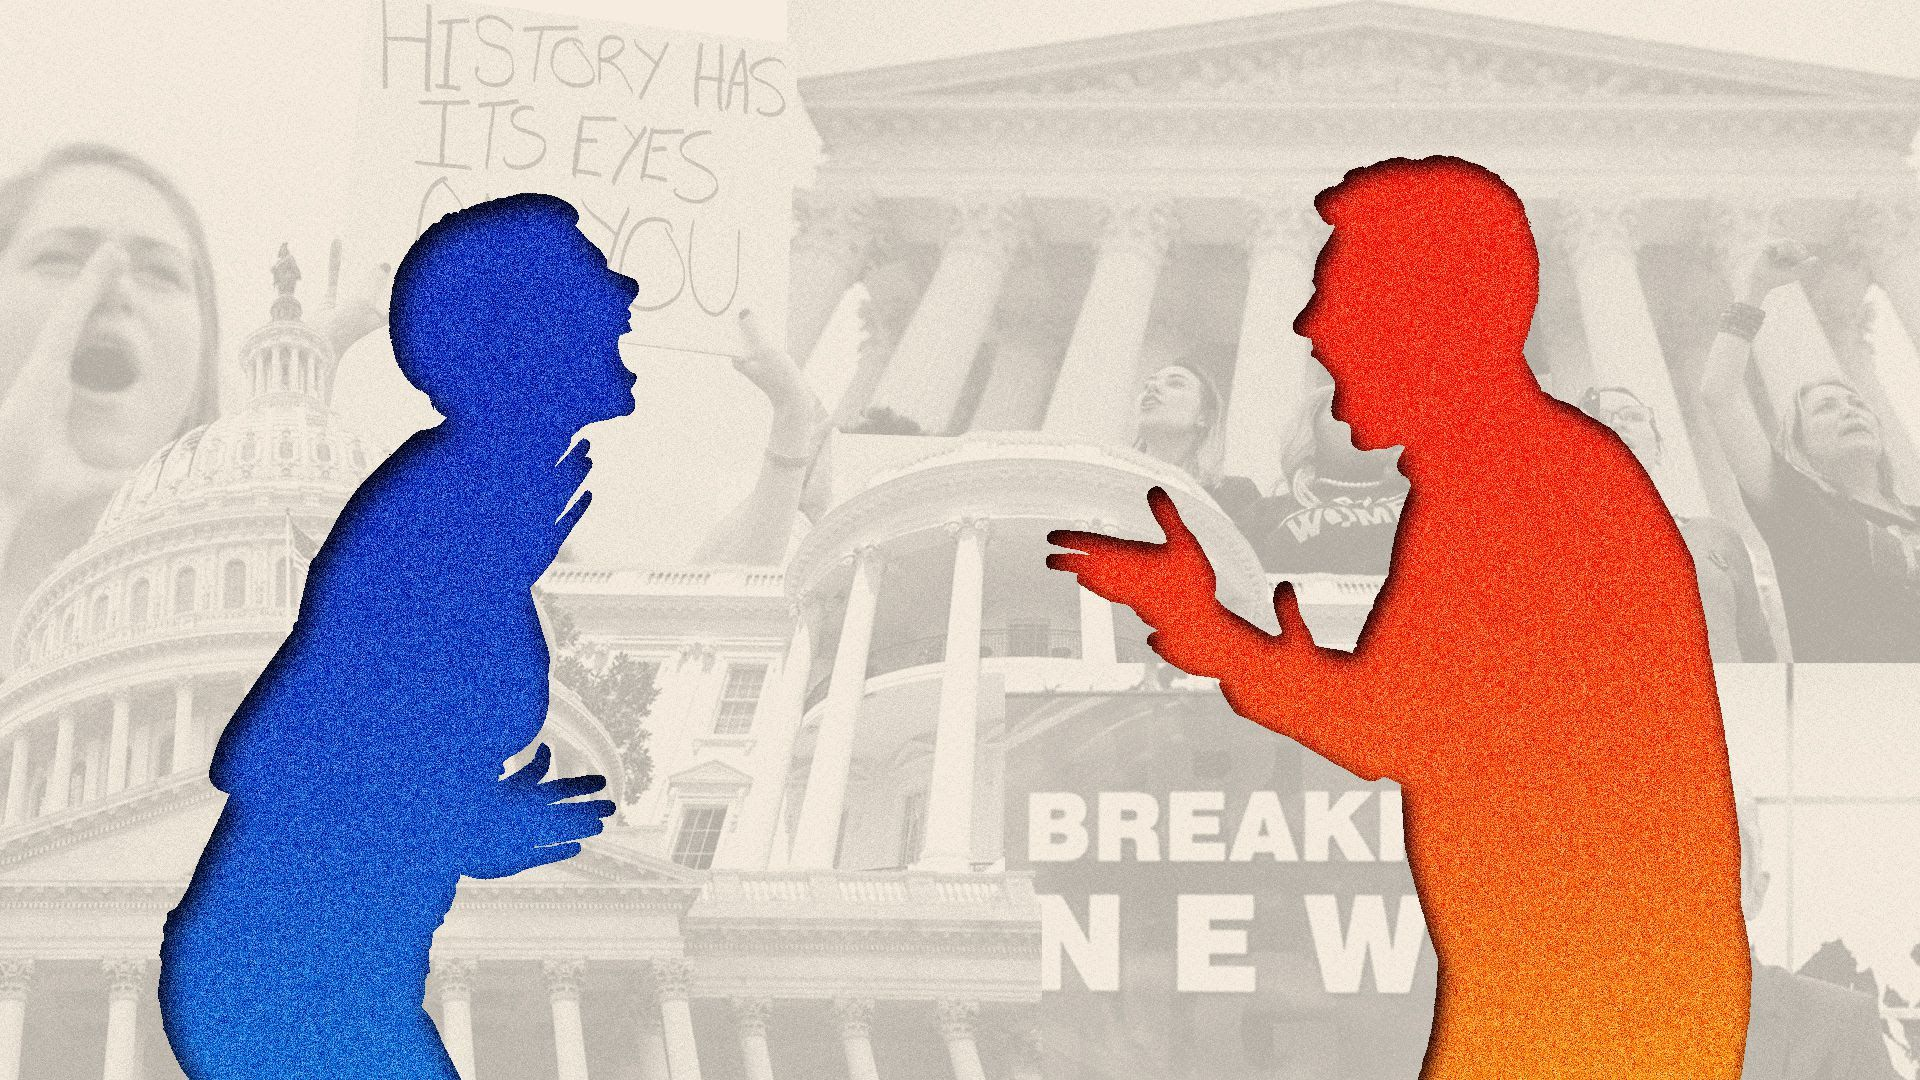 An illustrations of a blue person and a red person screaming at one another set against a partisan backdrop in Washington